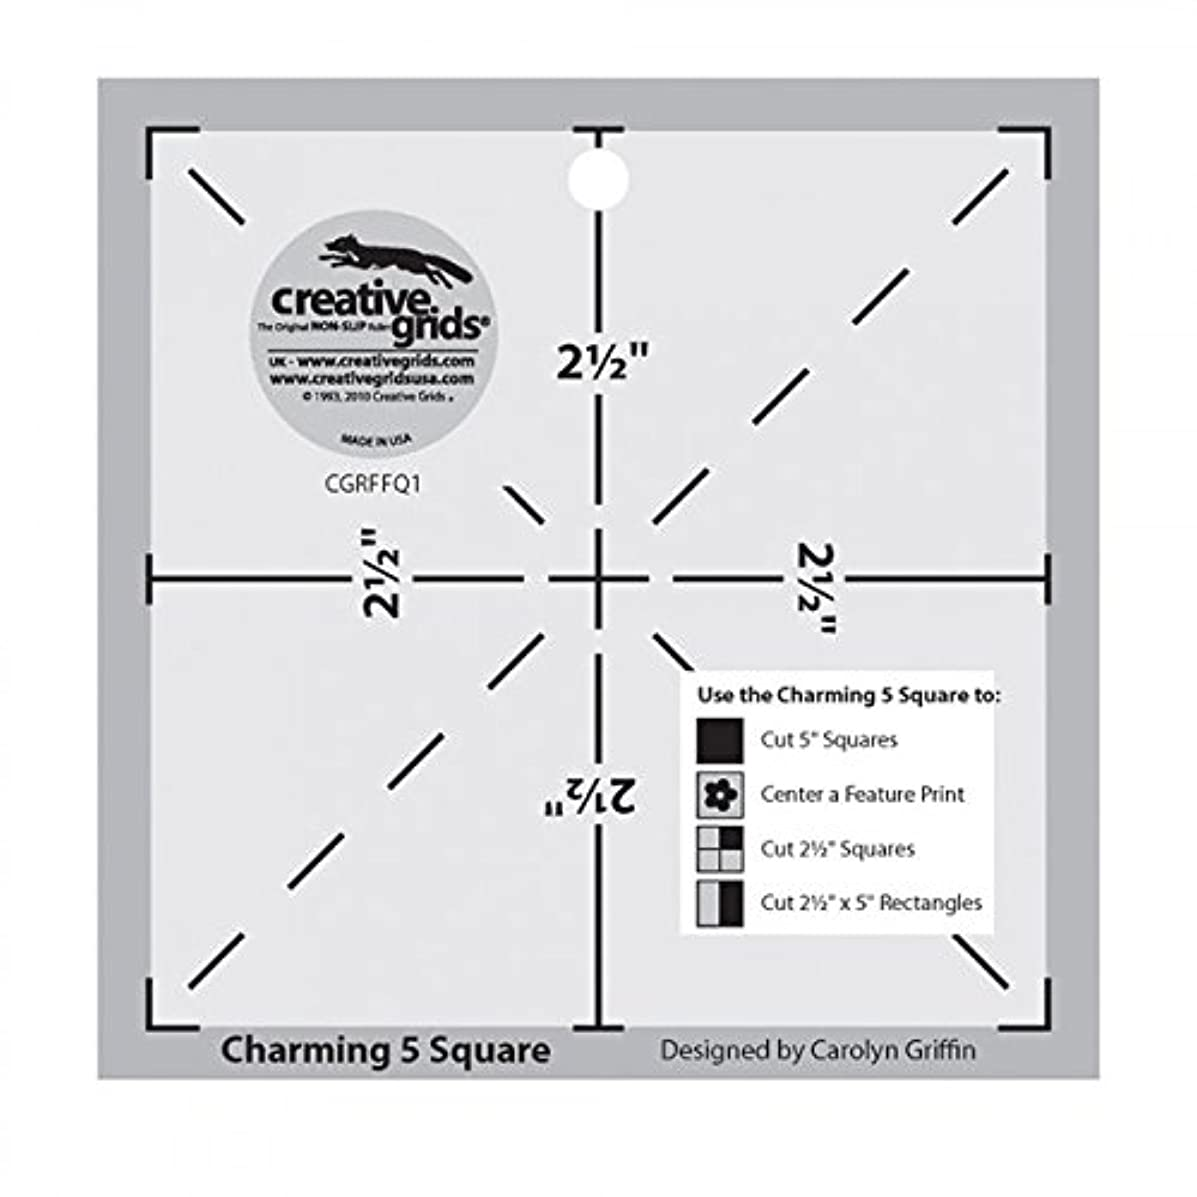 Creative Grids Charming 5 Inch Square Quilt Template: Template 1 -- the Charming 5 Square (CGRFFQ1)